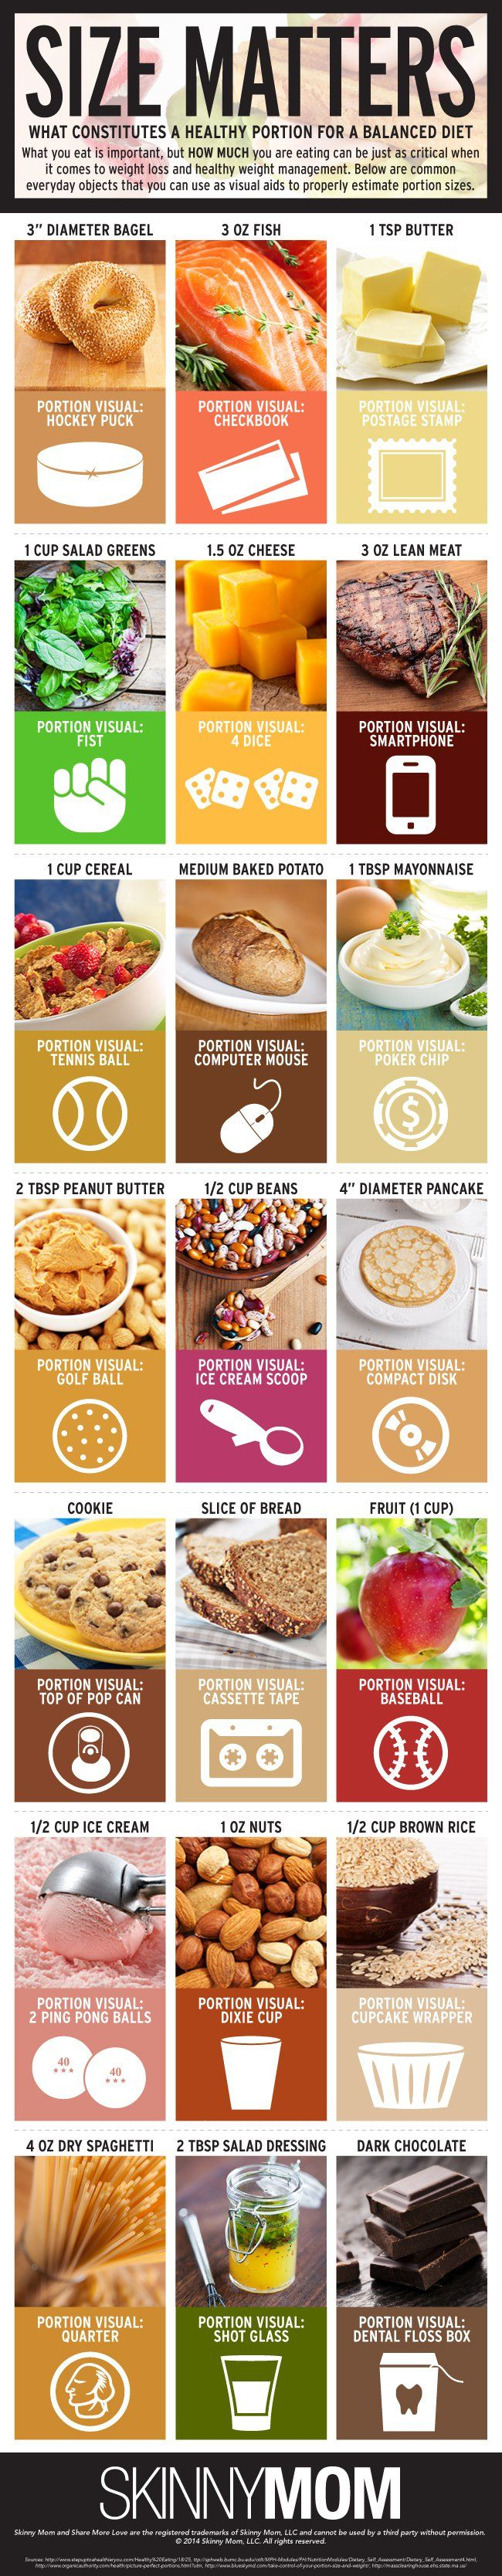 Quick tips to avoid portion distortion and help you eat the right amount of nutritious foods to propel or maintain your healthy lifestyle.